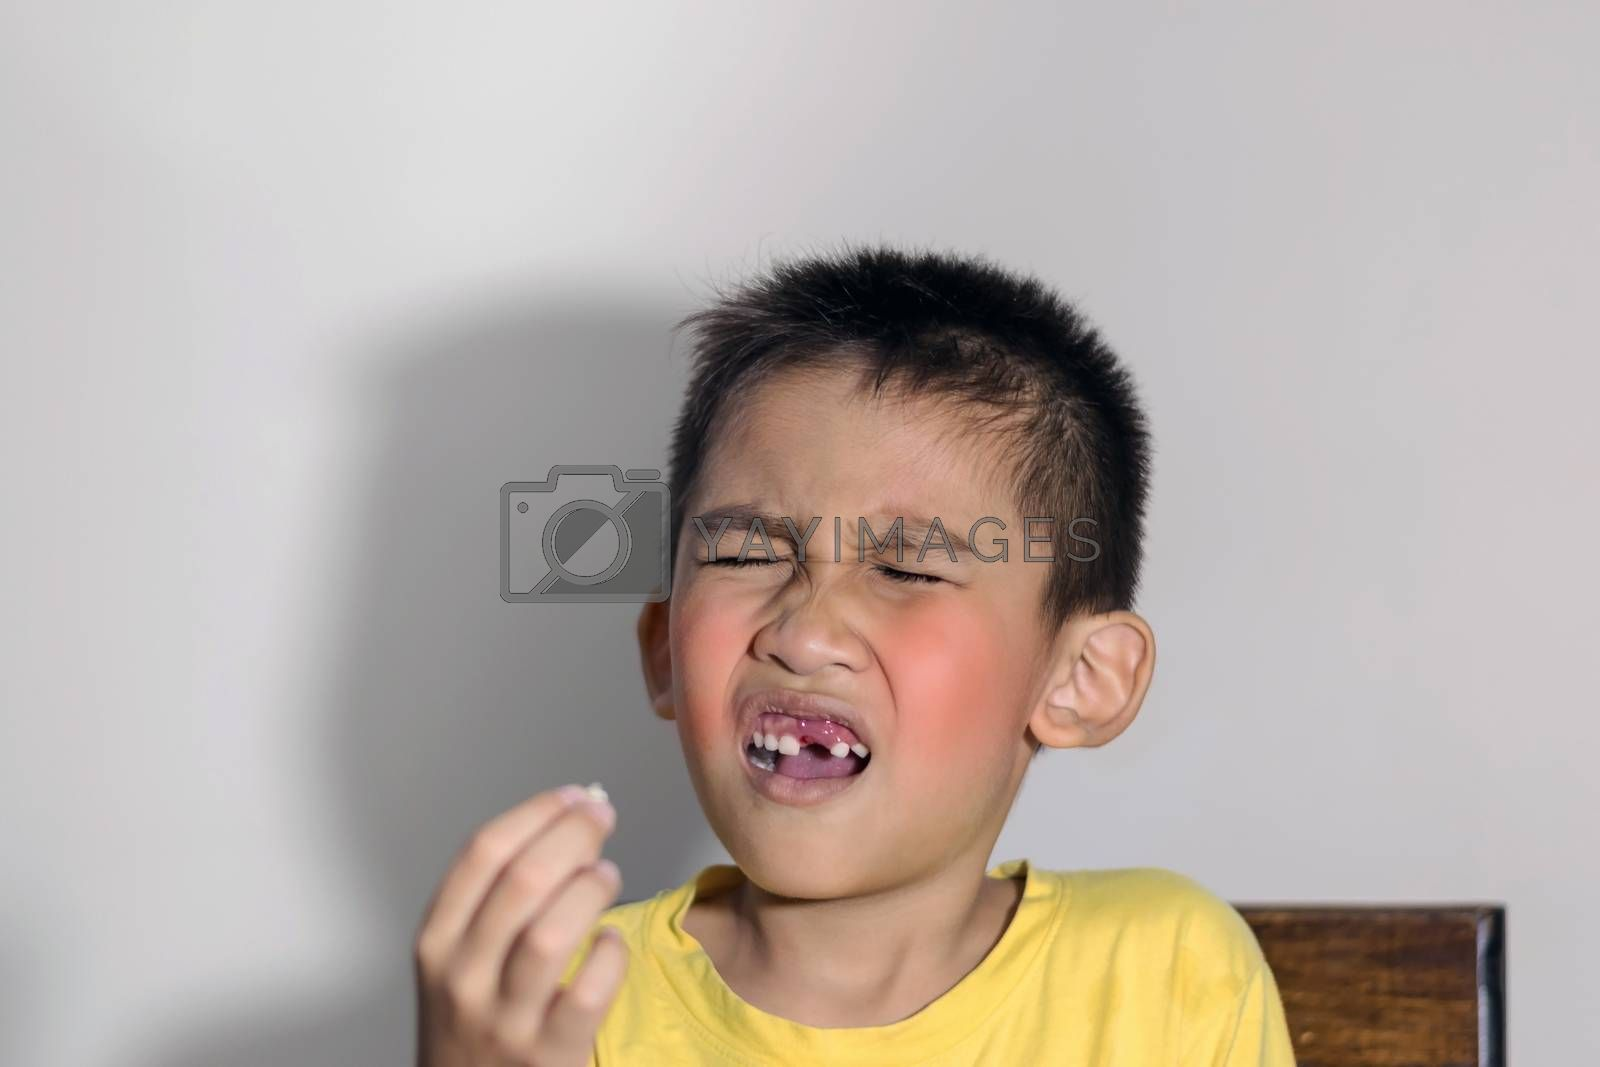 The boy cried out in pain as one of his teeth fell out and held it in his hand.